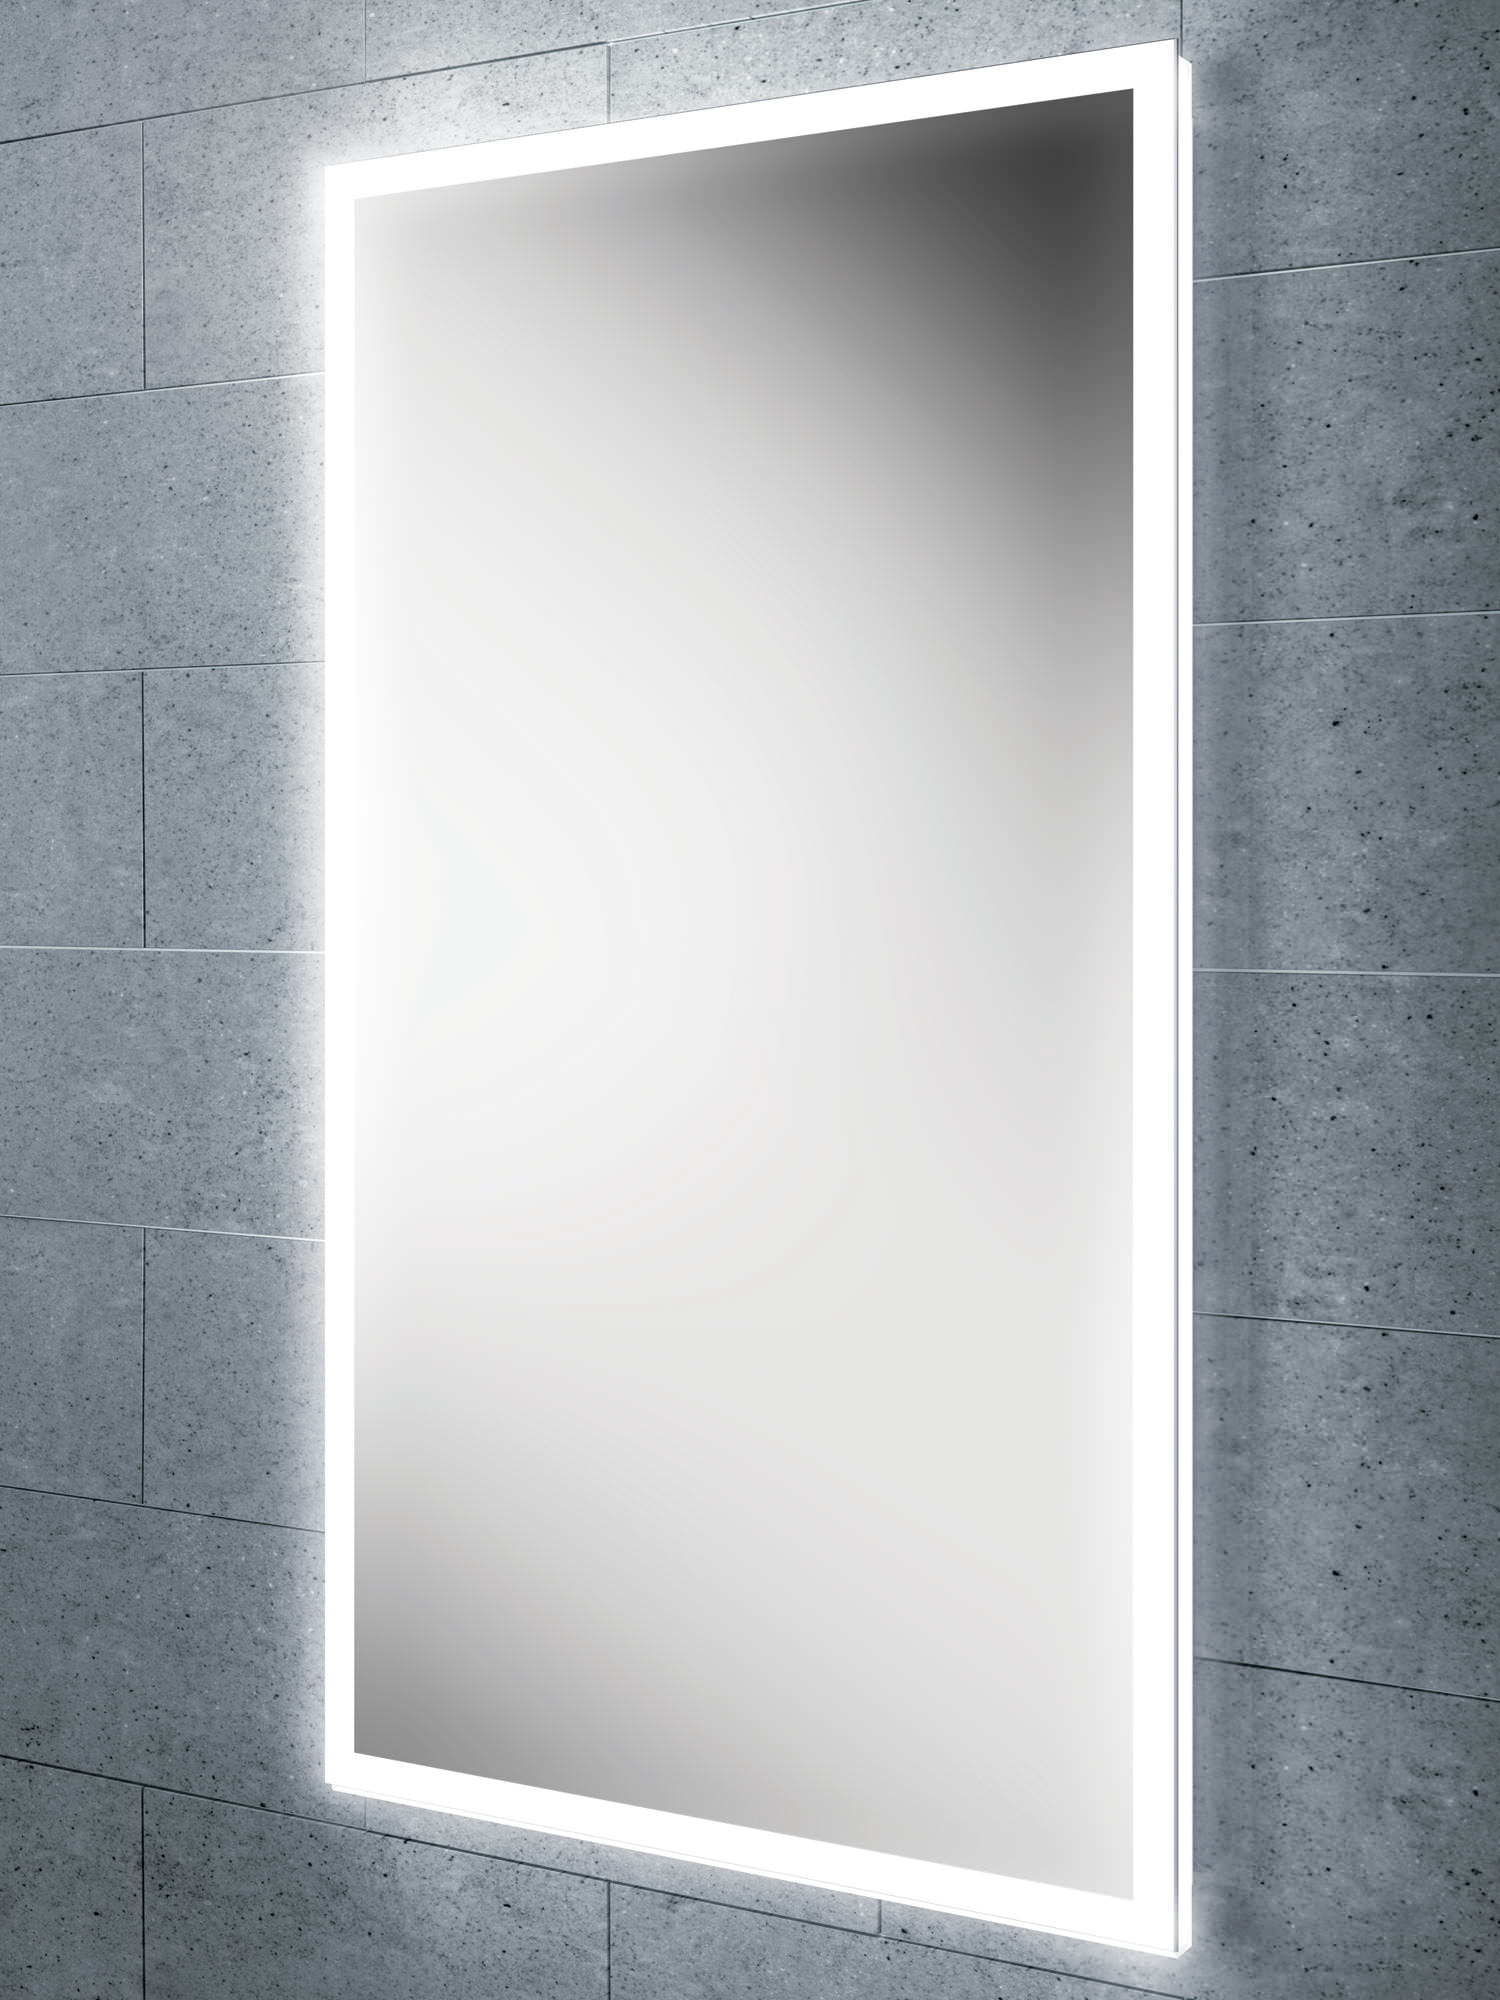 Bathroom Mirrors Led hib globe 45 steam free led illuminated bathroom mirror 450x800mm